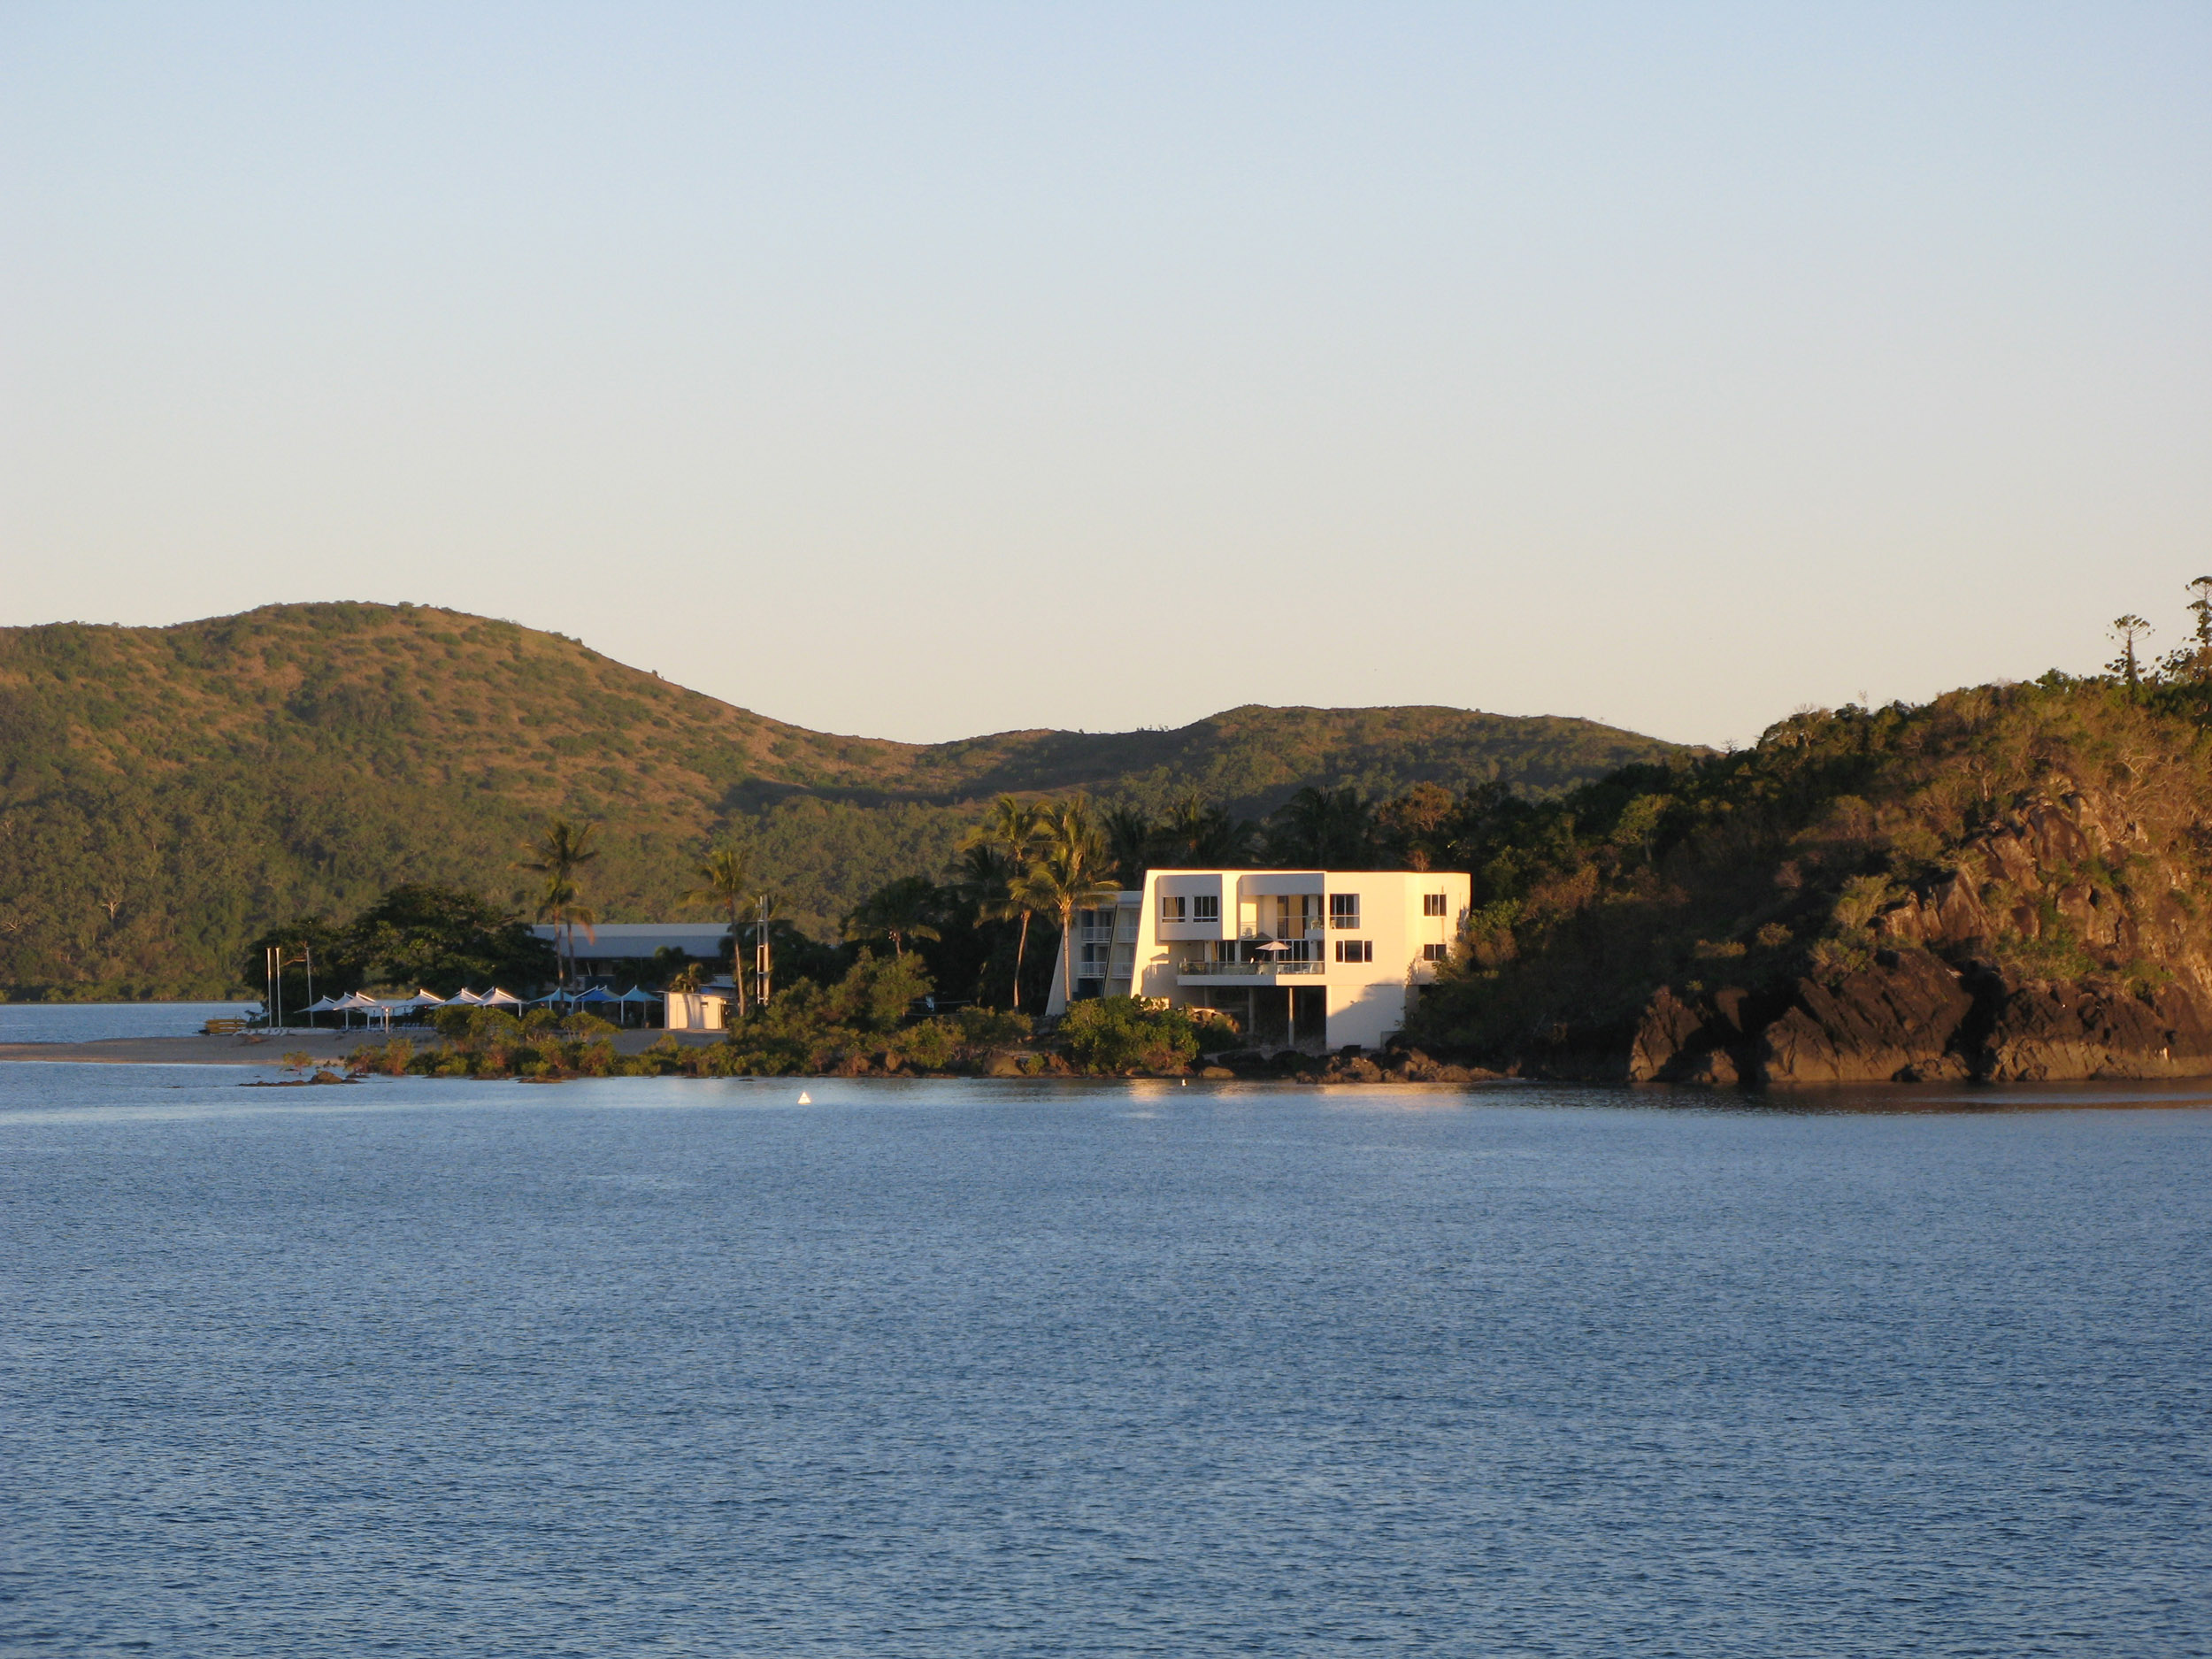 one of the resort hotels on daydream island, whitsundays queensland